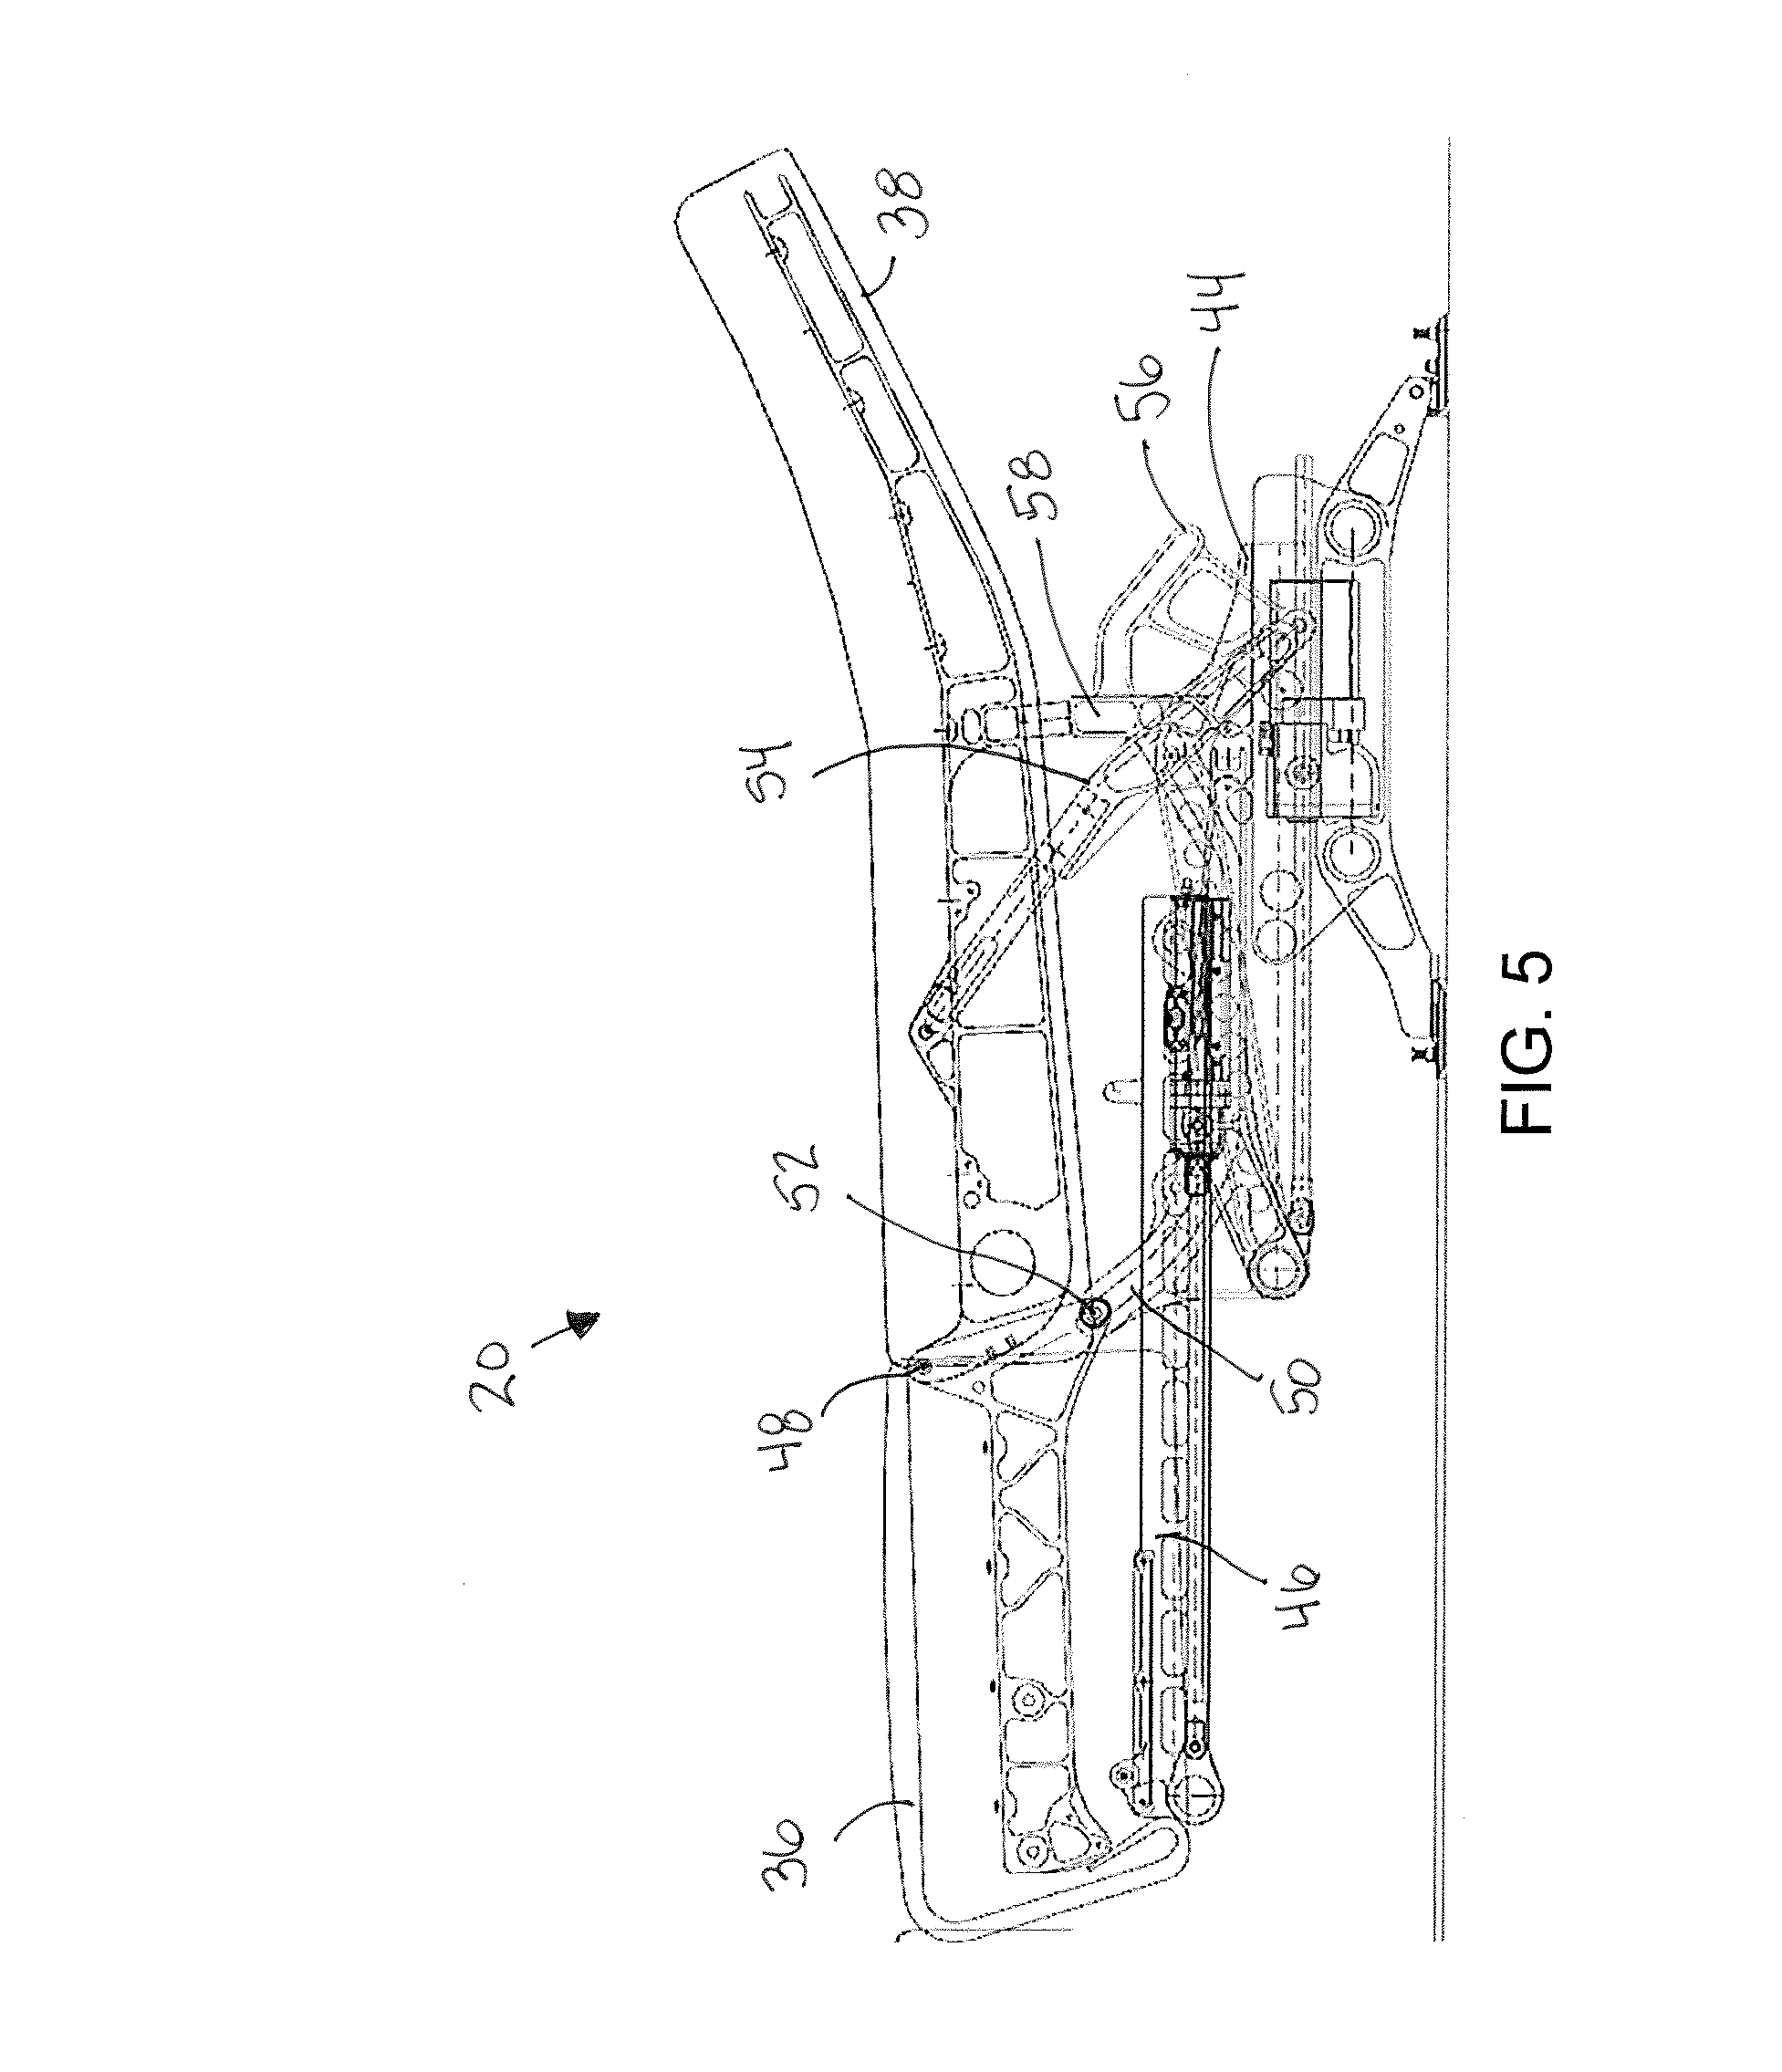 Patent US20140300162 - Aircraft seat employing dual